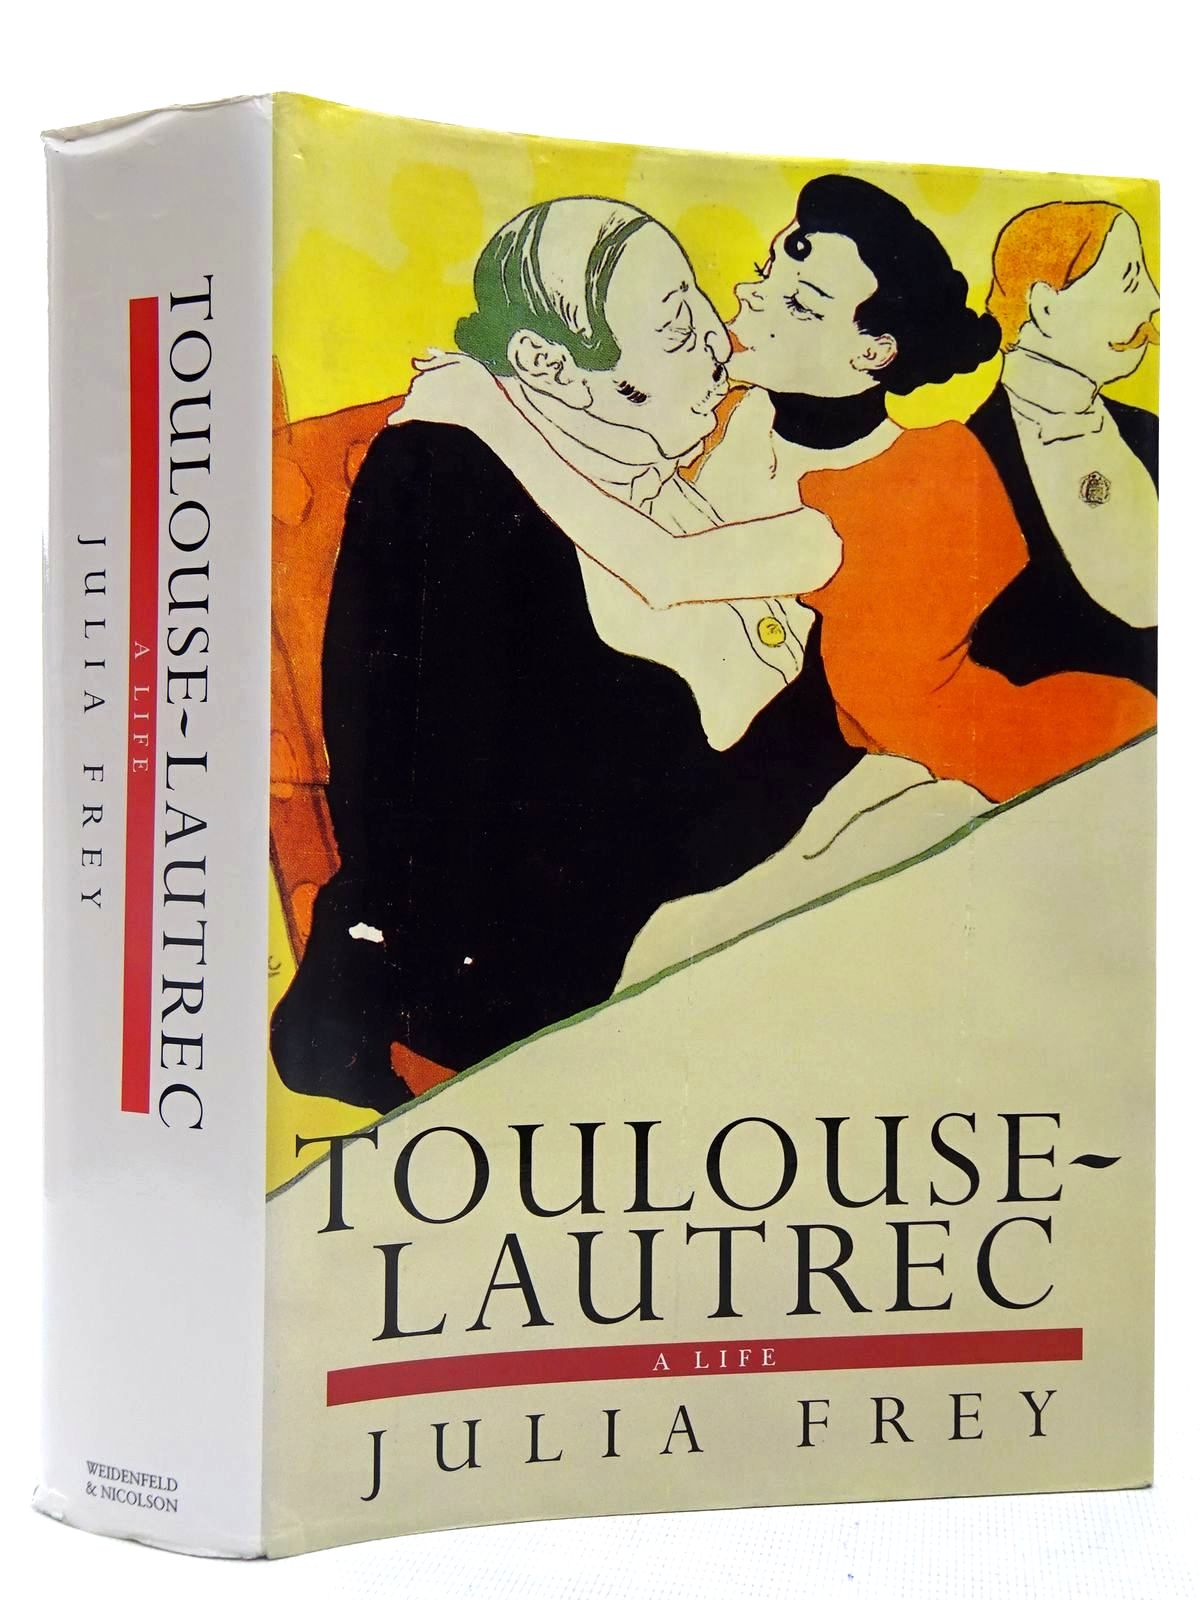 Photo of TOULOUSE-LAUTREC A LIFE written by Frey, Julia illustrated by Toulouse-Lautrec, Henri published by Weidenfeld and Nicolson (STOCK CODE: 2128084)  for sale by Stella & Rose's Books